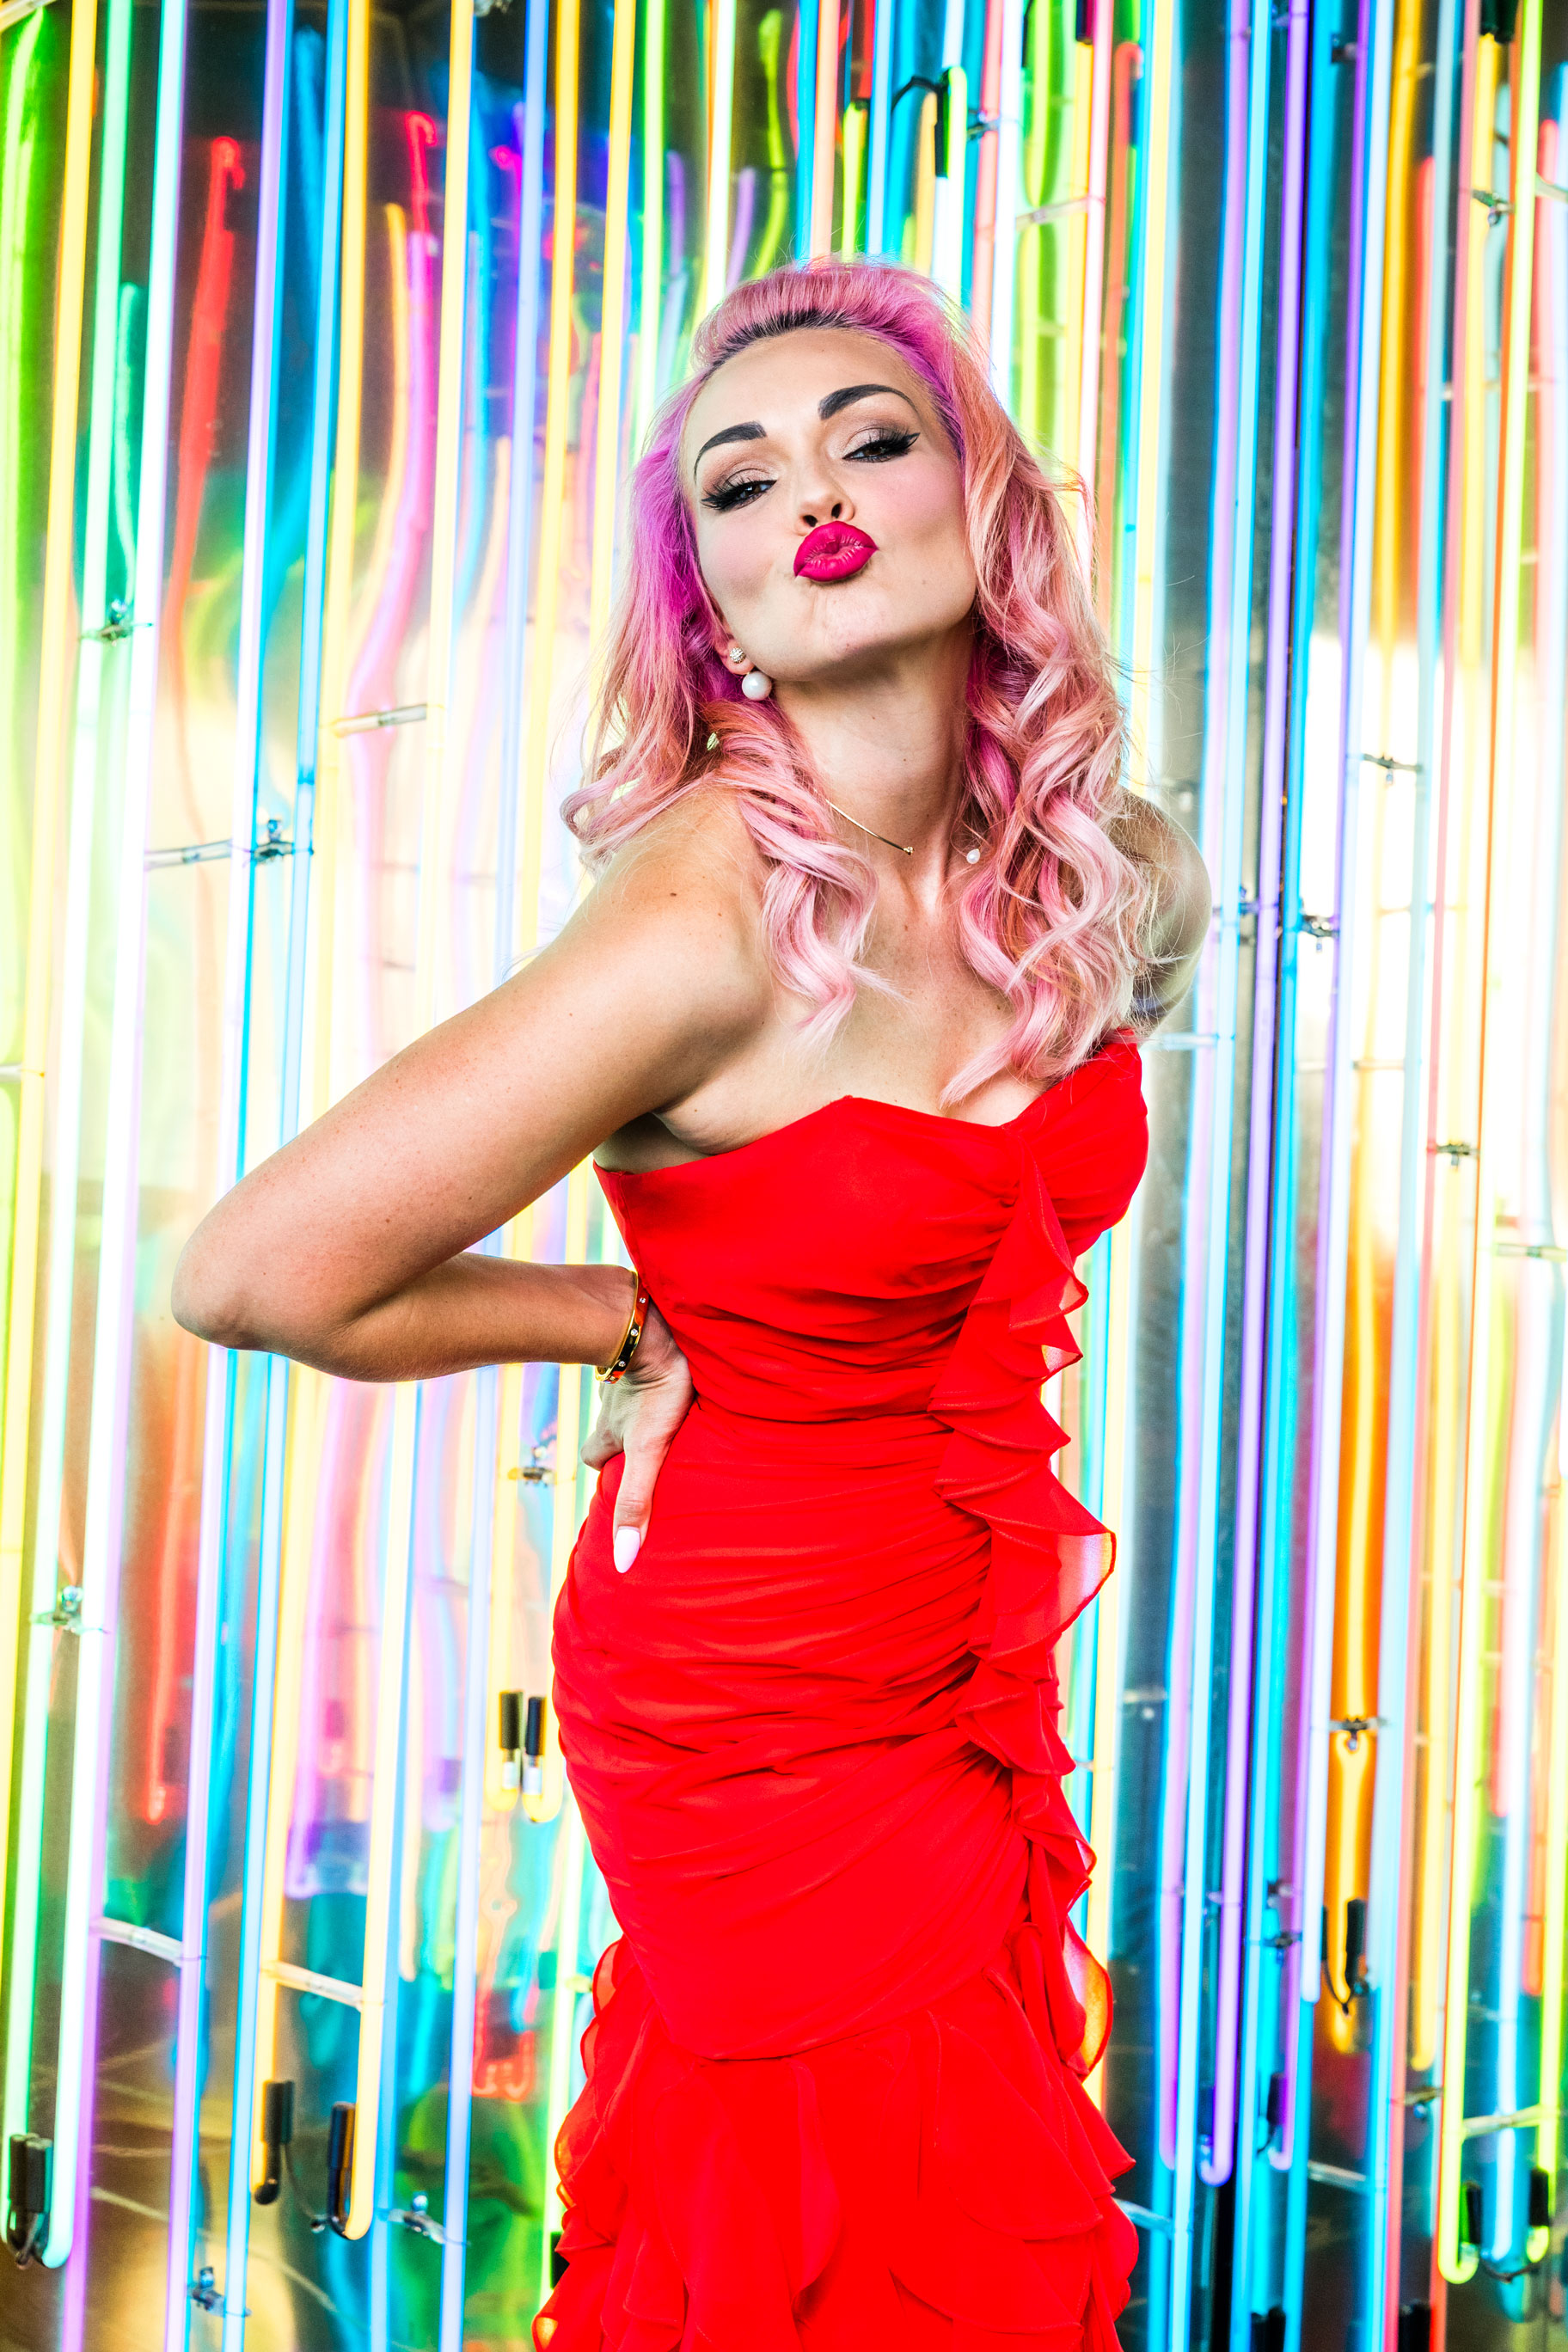 015_3101_Kandeejohnson_Photos_by_marcroyce_v1